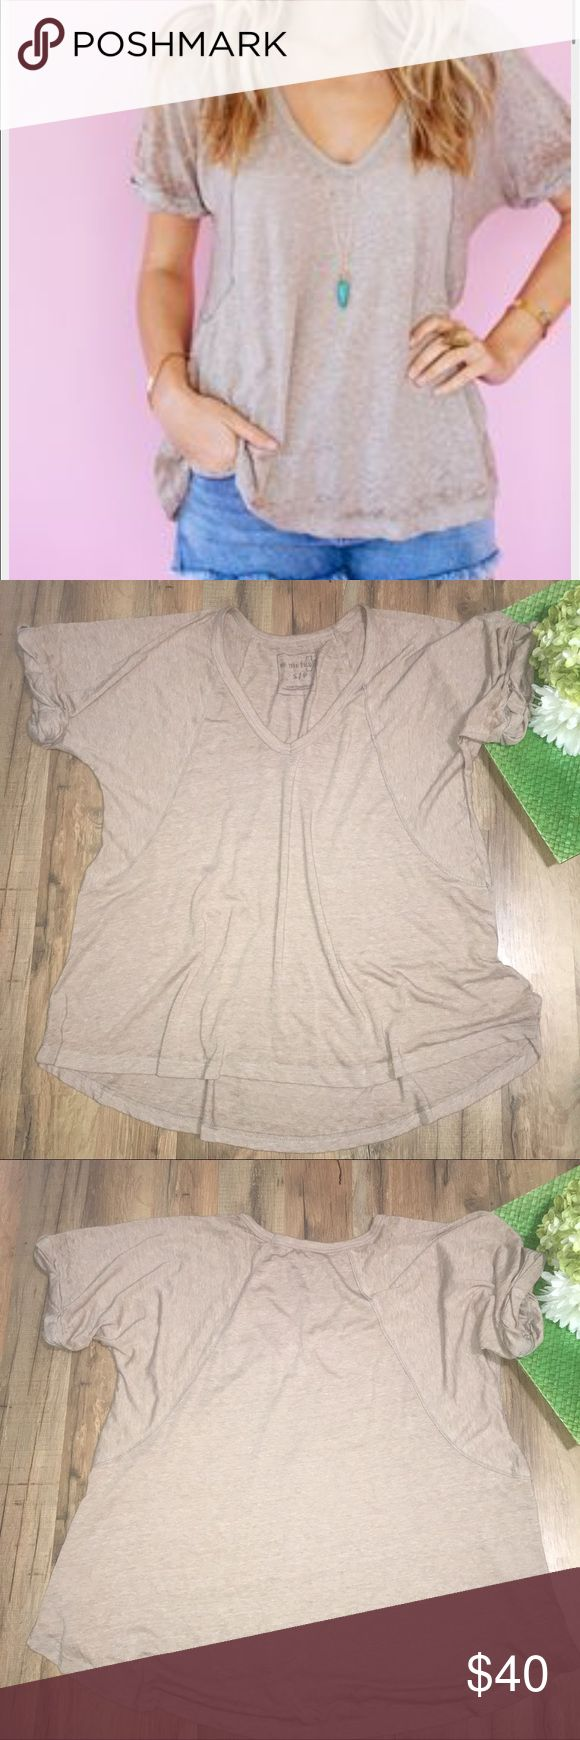 """WE THE FREE driftwood free fallin slouchy tee Length: 24/29"""" 